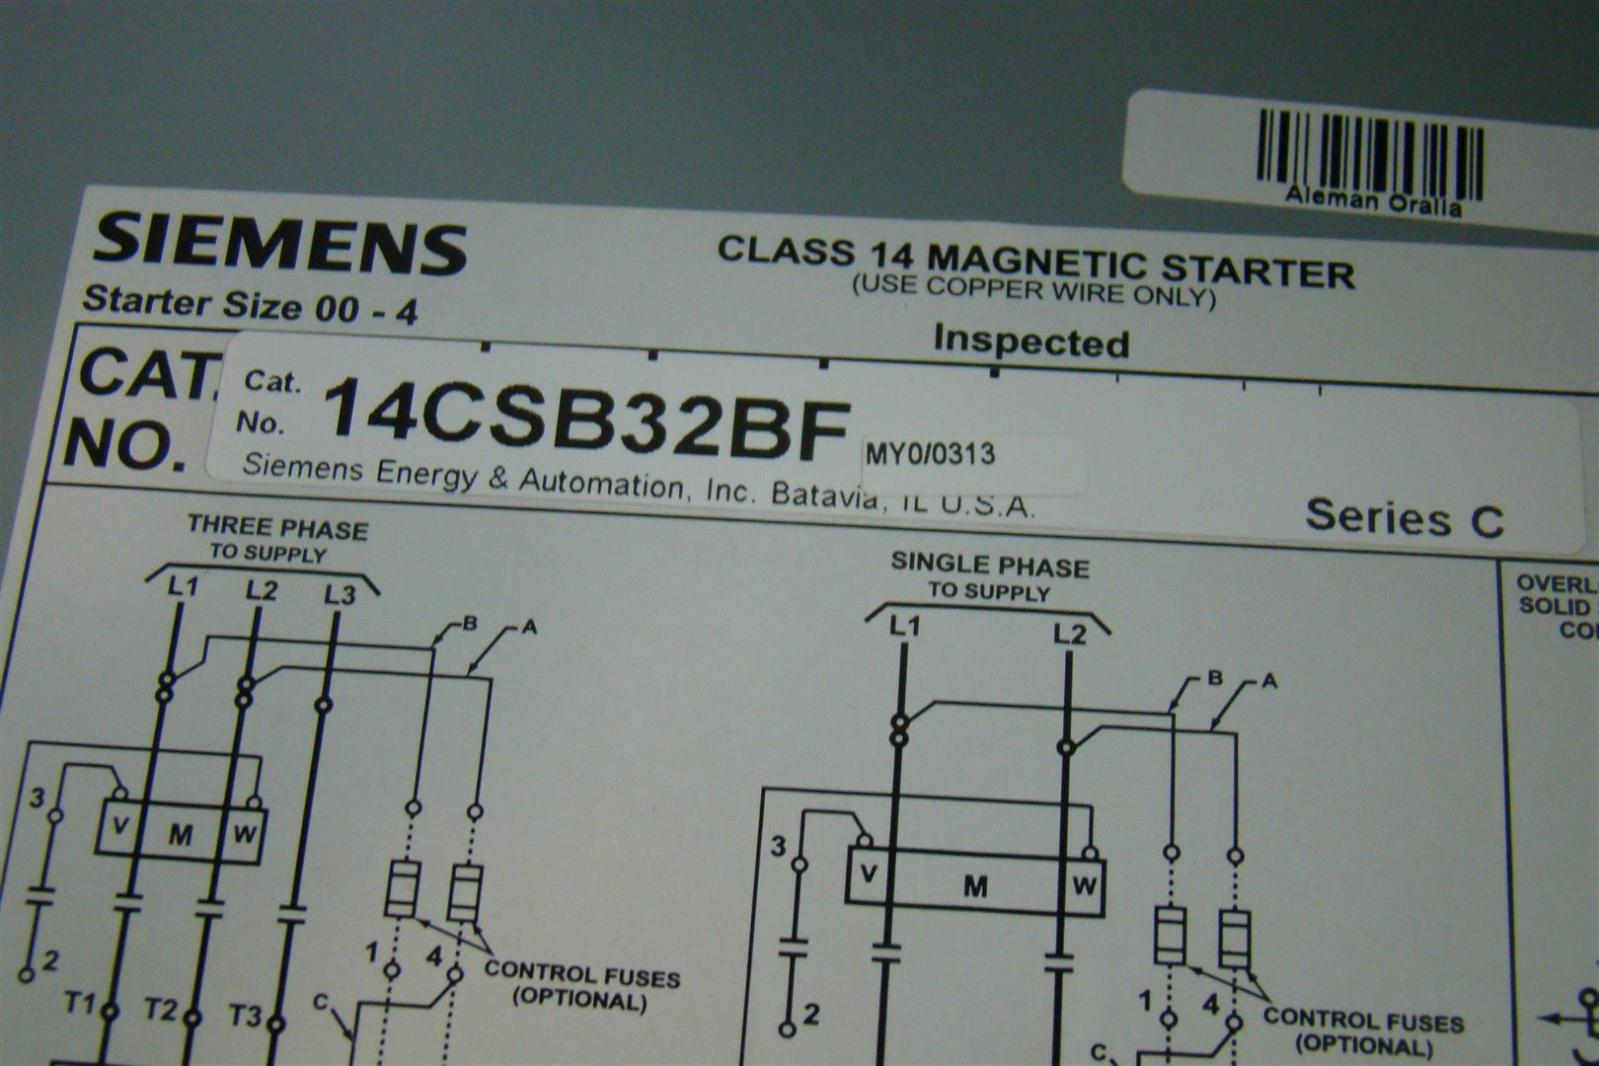 siemens motor wiring diagram jeep tj manual heavy duty starter class 14 magnetic